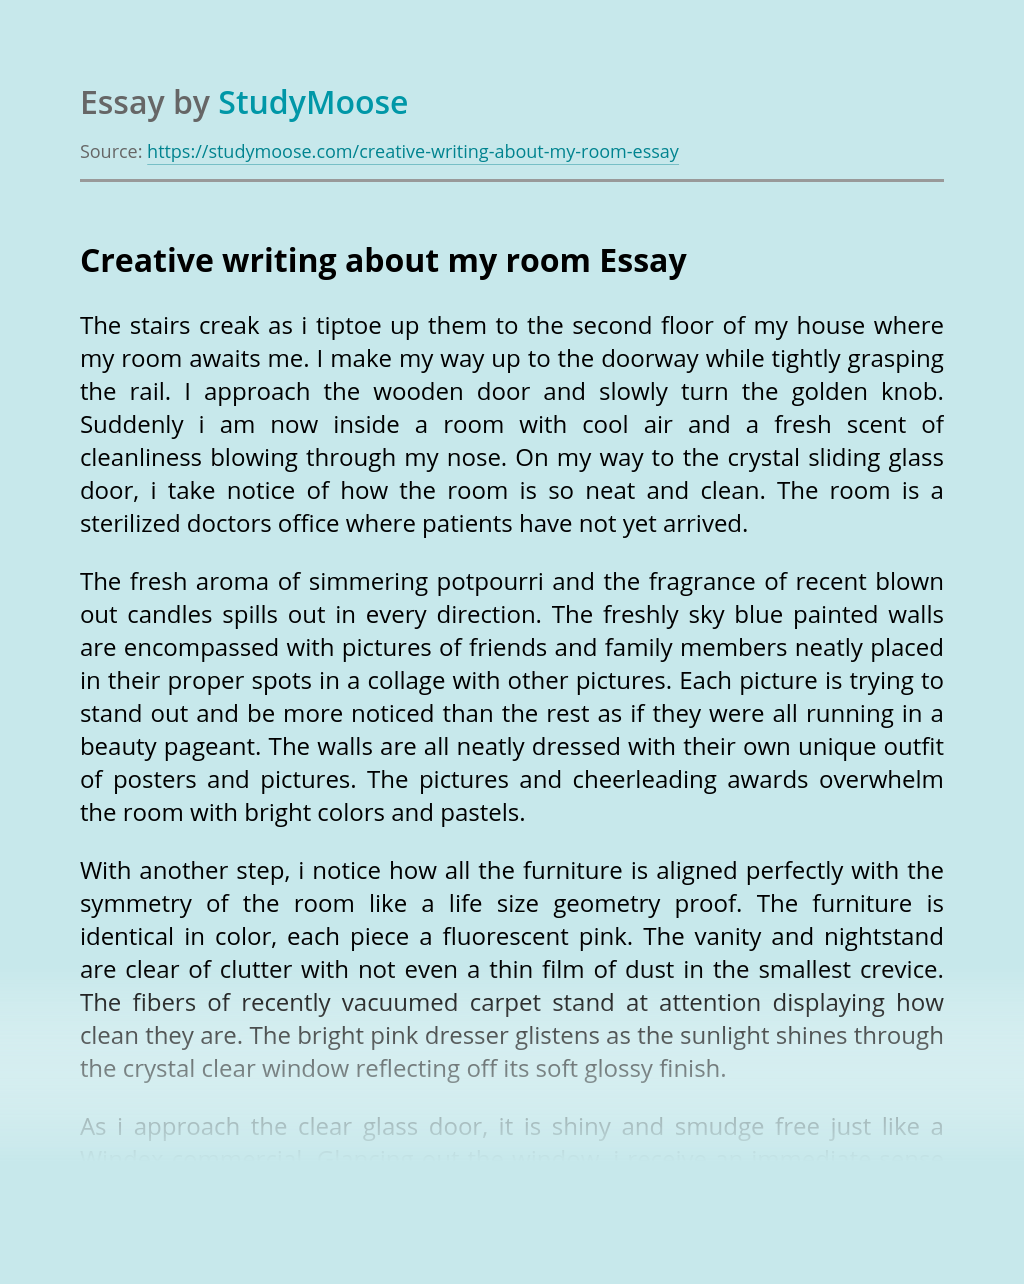 Creative writing about my room